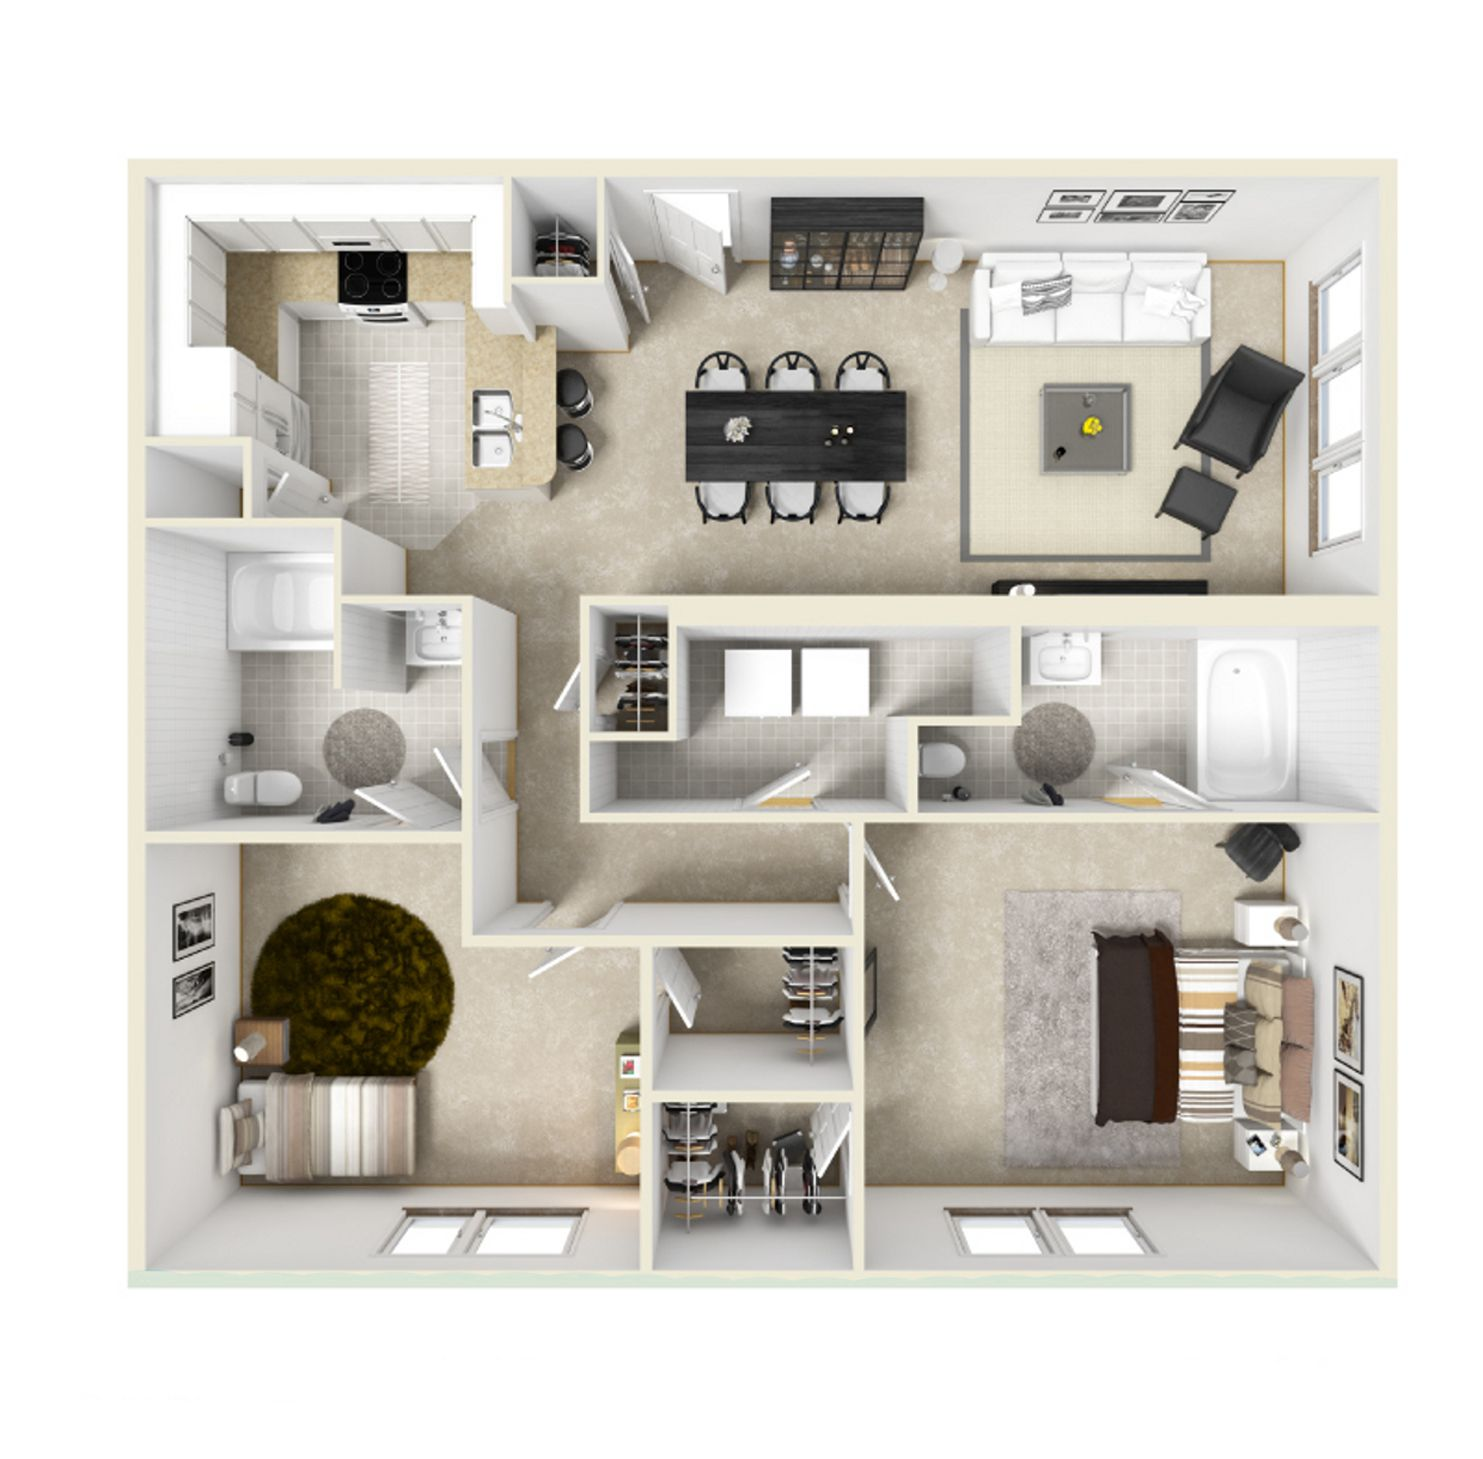 Image Result For 3 Bedroom Apartments Affordable Bedroom Bedroom House Plans Houston Apartment